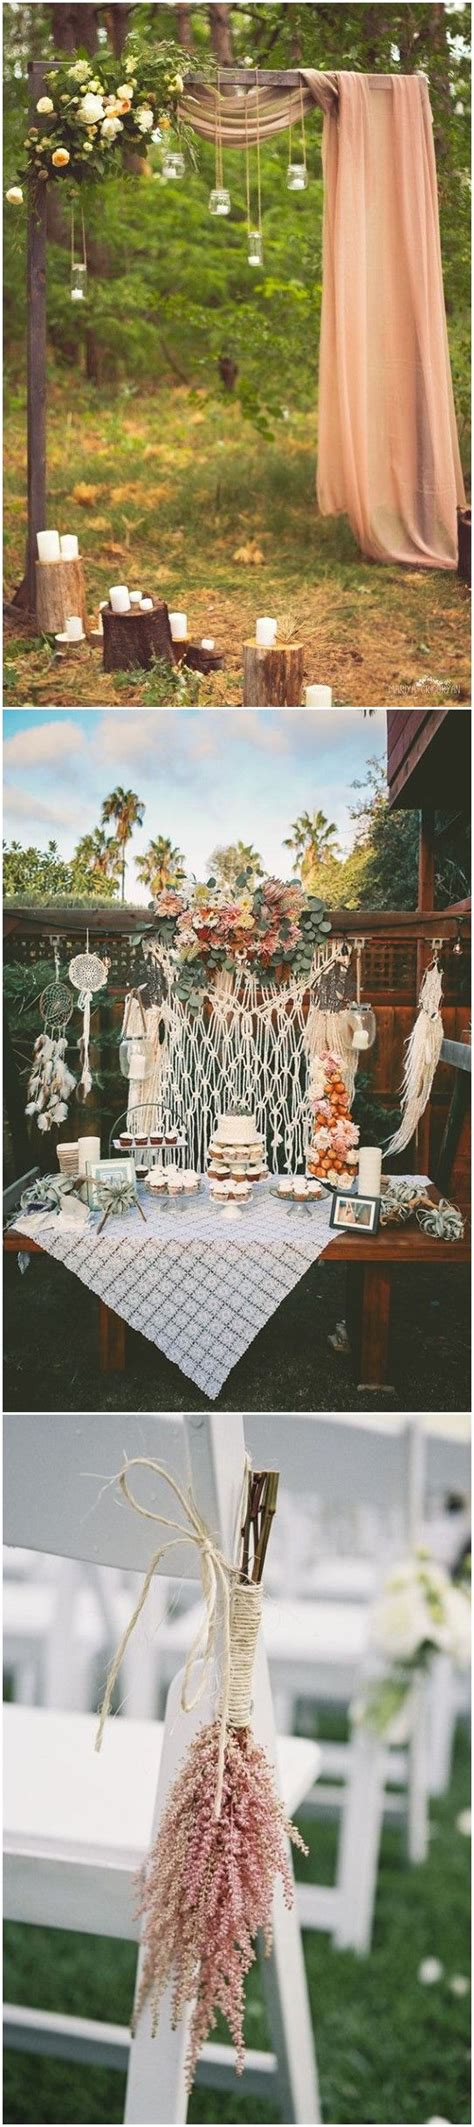 20 gorgeous boho wedding d 233 cor ideas on pinterest diy